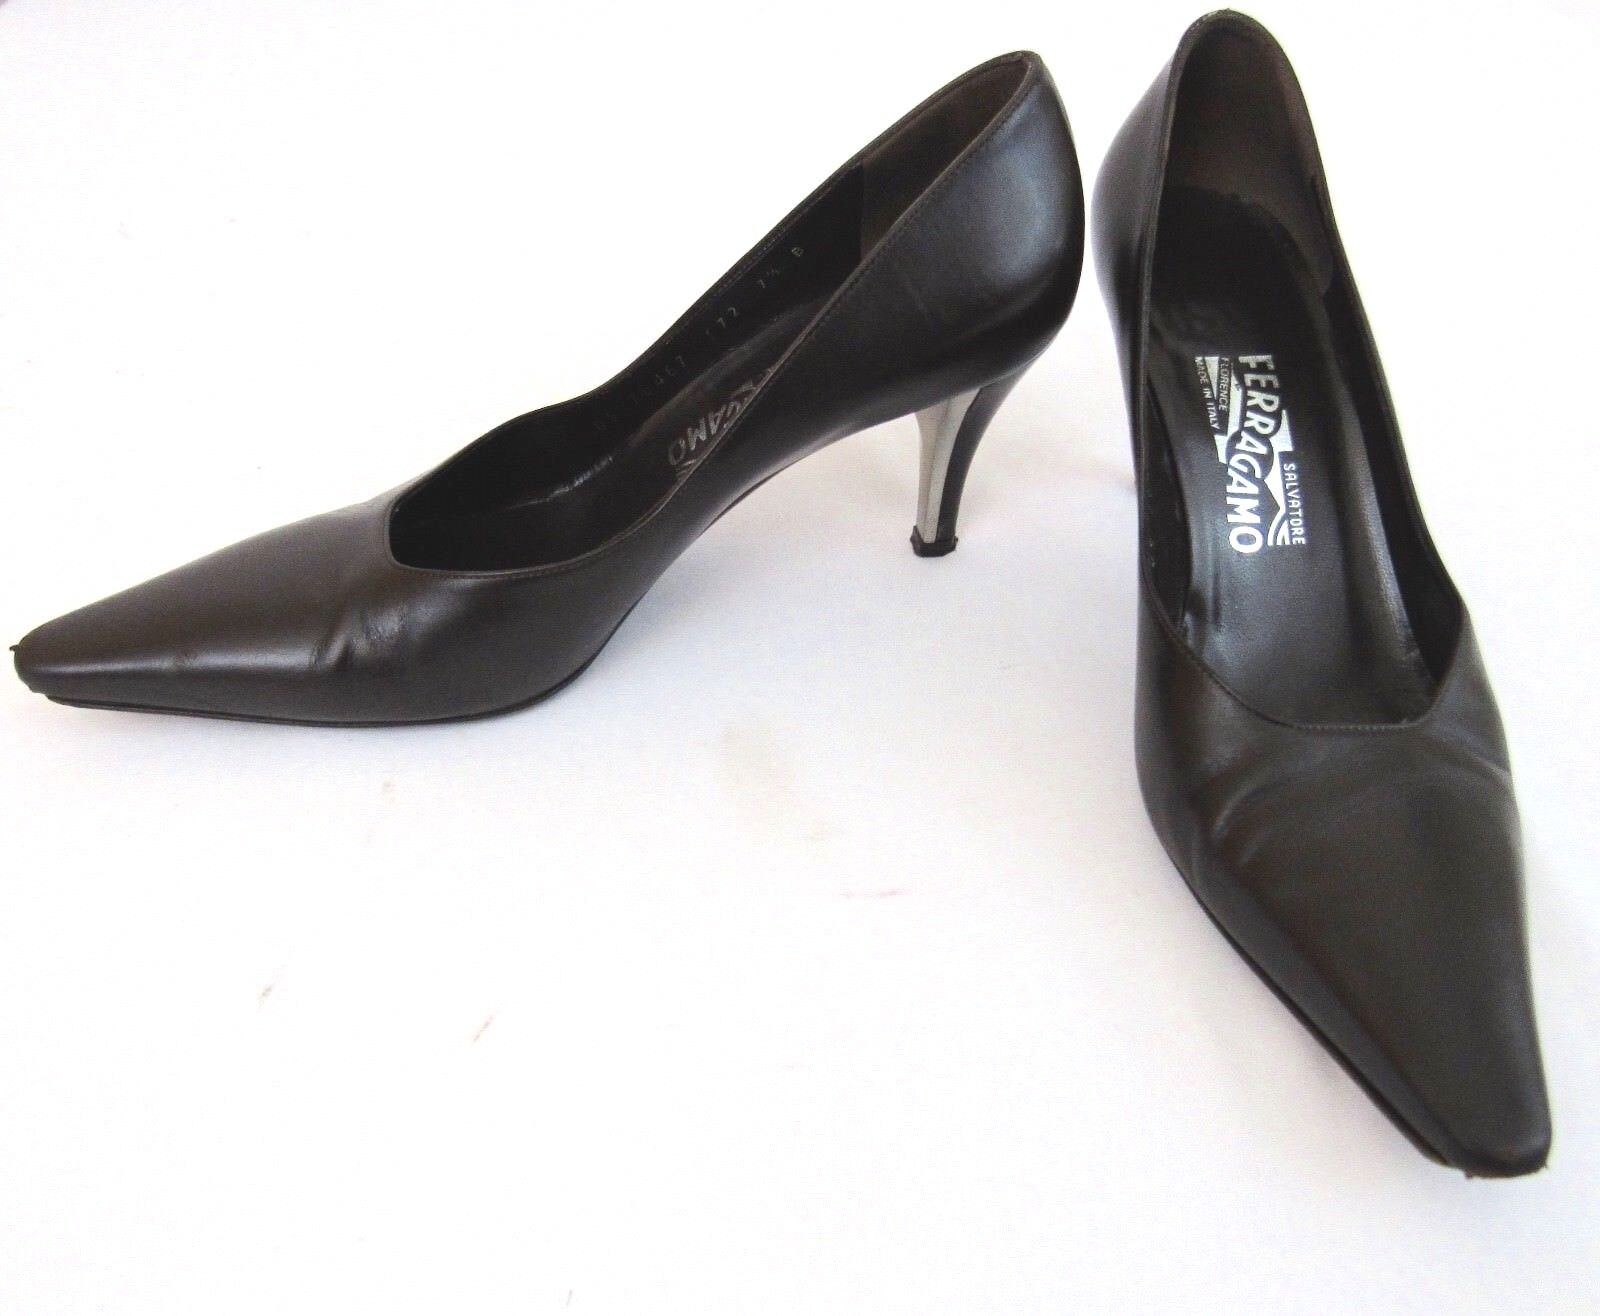 Salvatore Ferragamo Brown Leather Pumps size 7.5